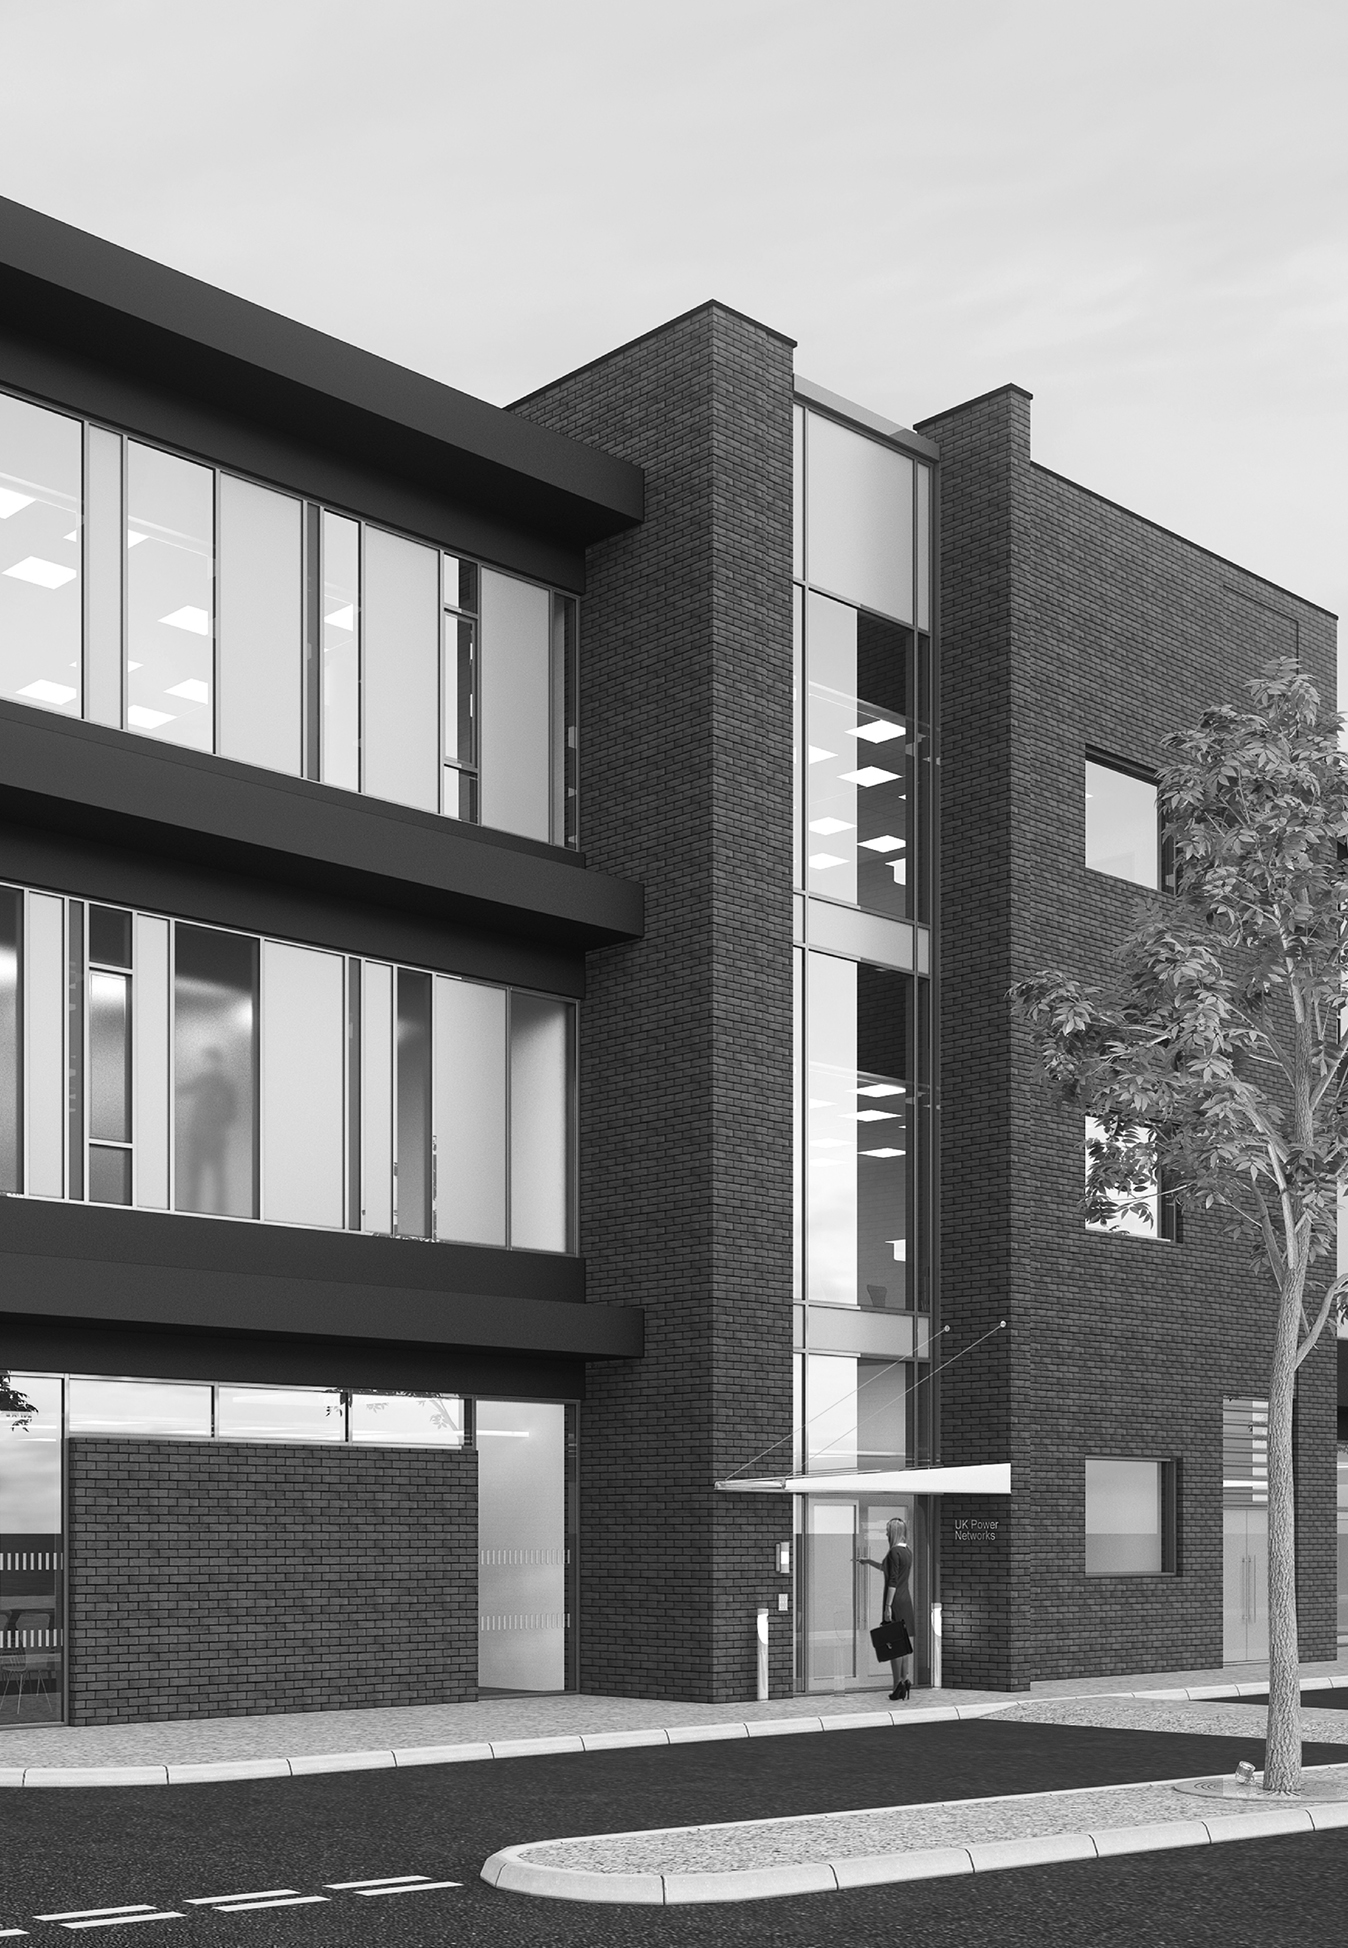 Brick and curtain wall office building